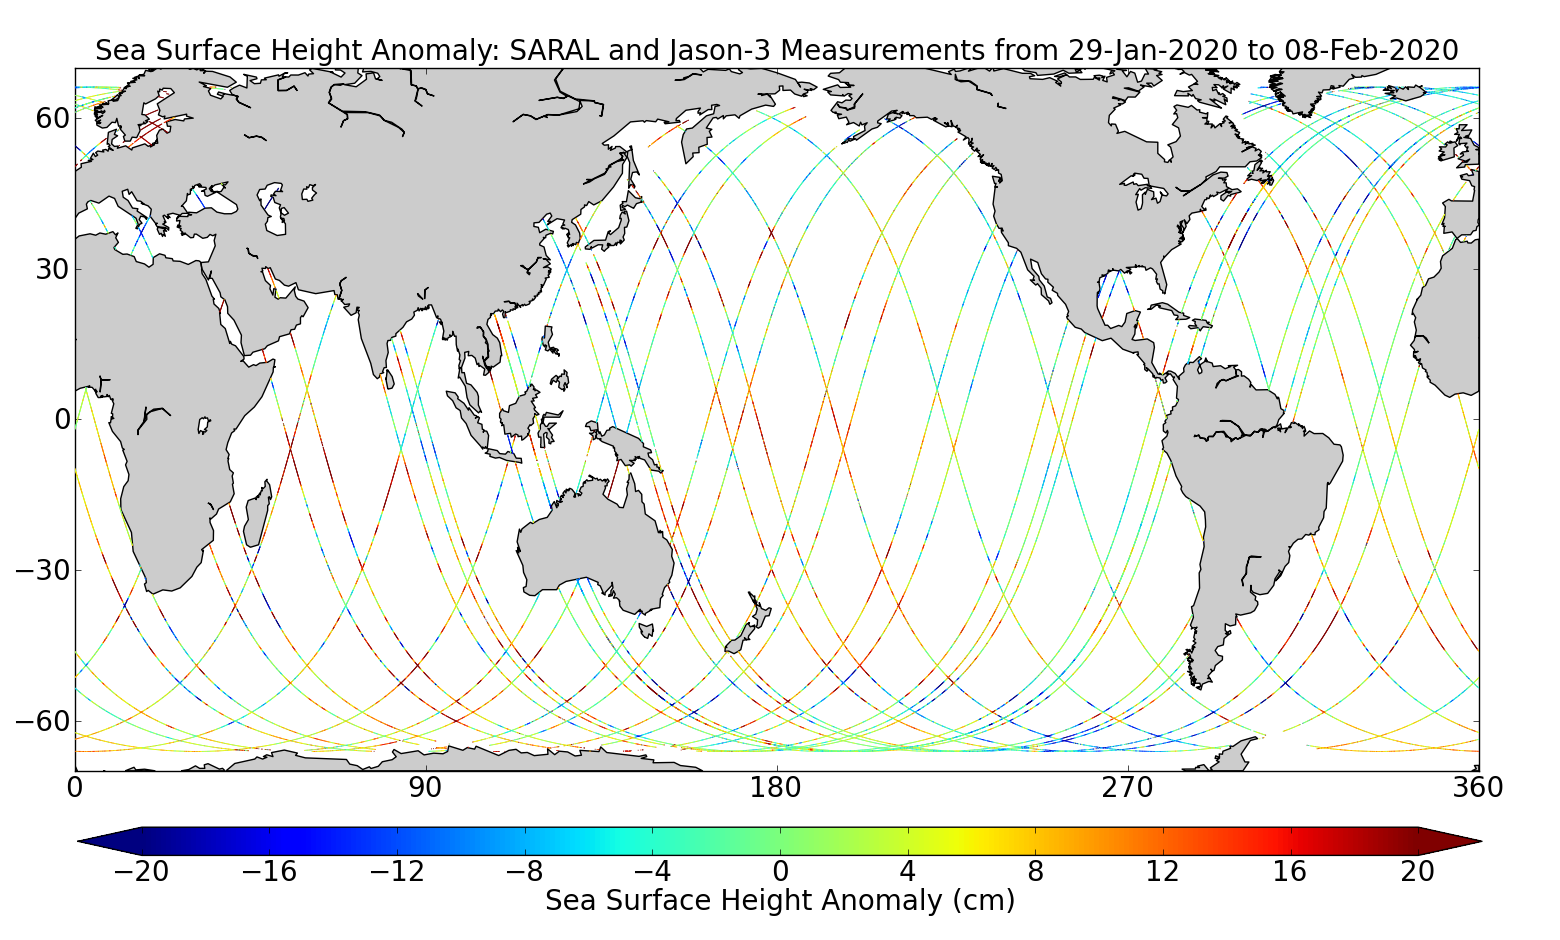 Sea Surface Height Anomaly: SARAL and Jason-3 Measurements from 29-Jan-2020 to 08-Feb-2020